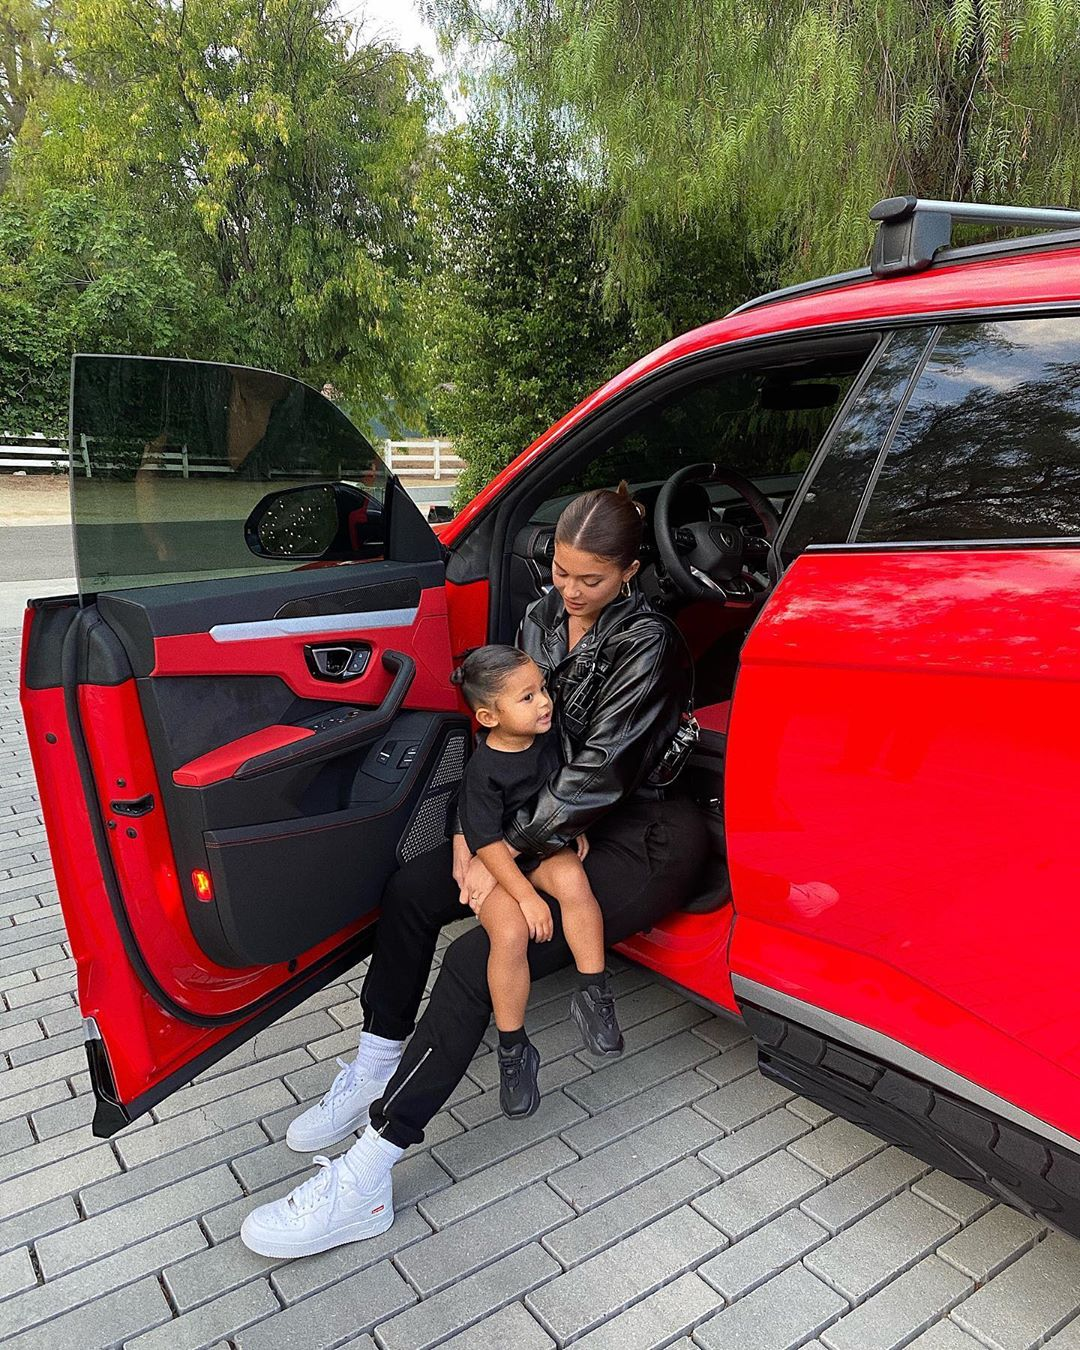 $ 200,000 Pony From Kylie Jenner To Her Daughter